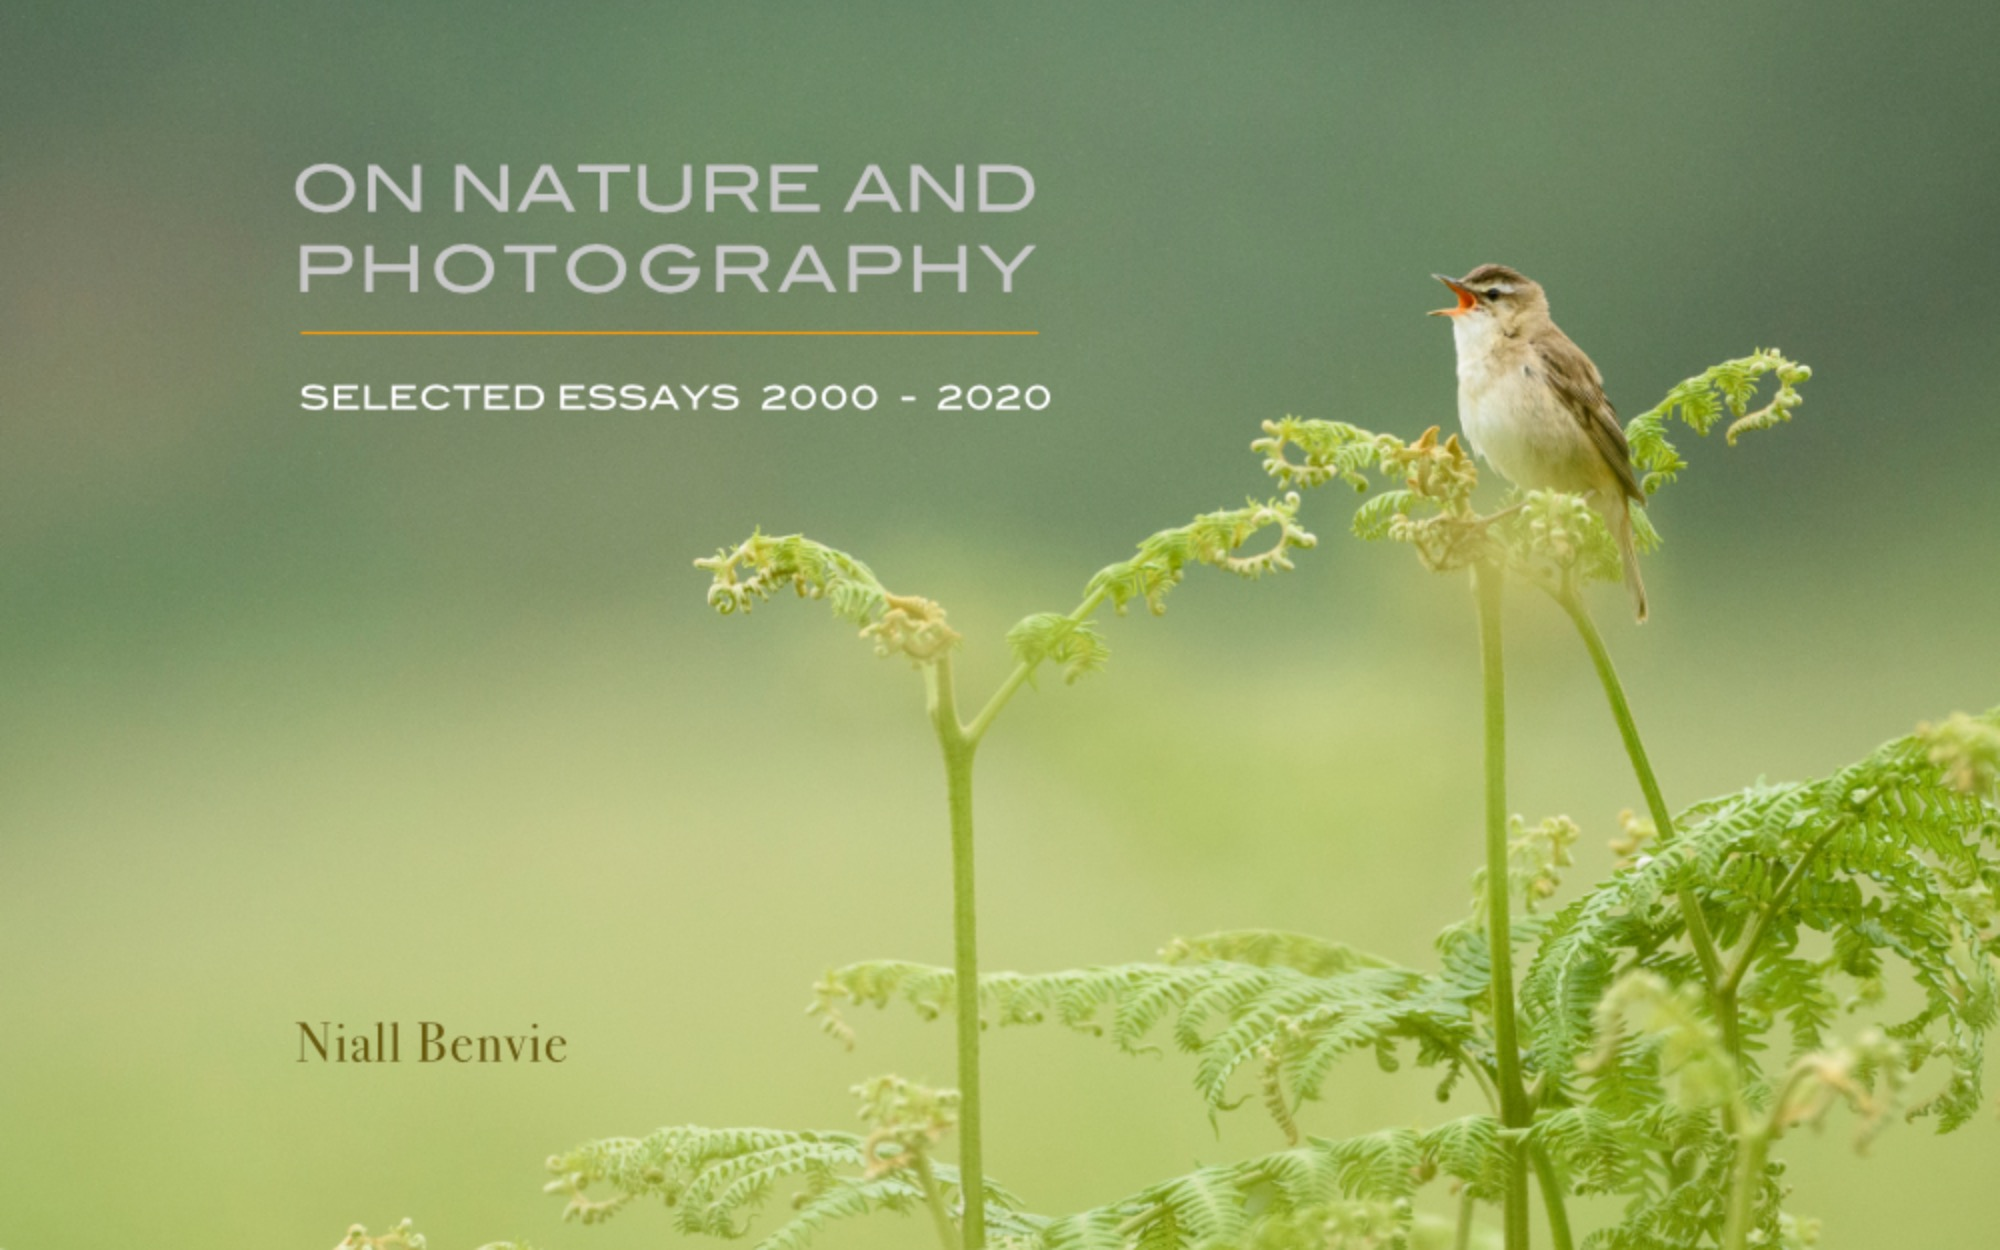 On Nature and Photography. Selected Essays 2000 - 2020.